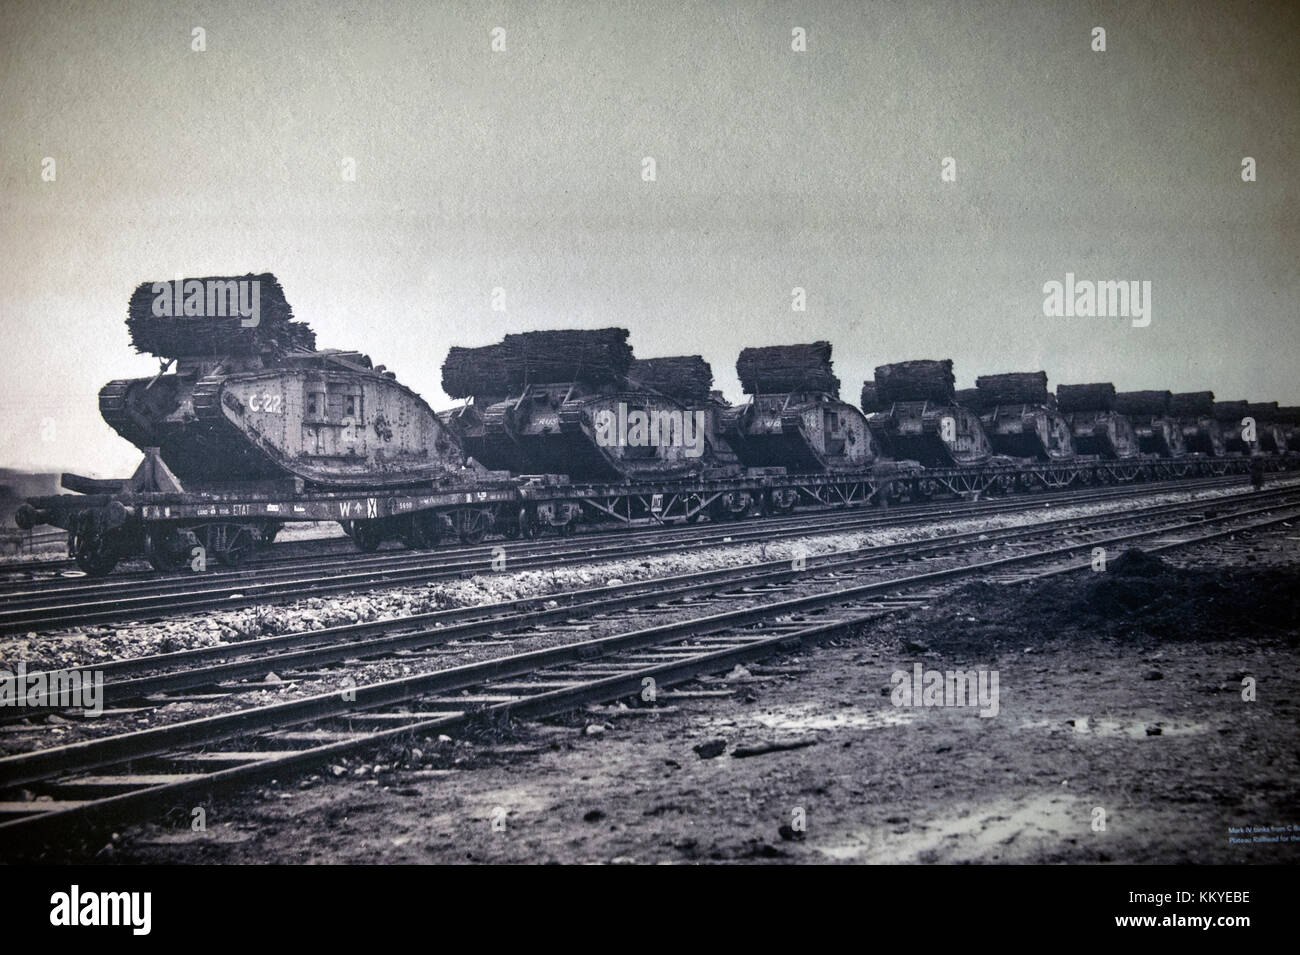 The British Mark lV tank fitted with fascines, arriving at the Plateau Railhead in northern France in preparation - Stock Image